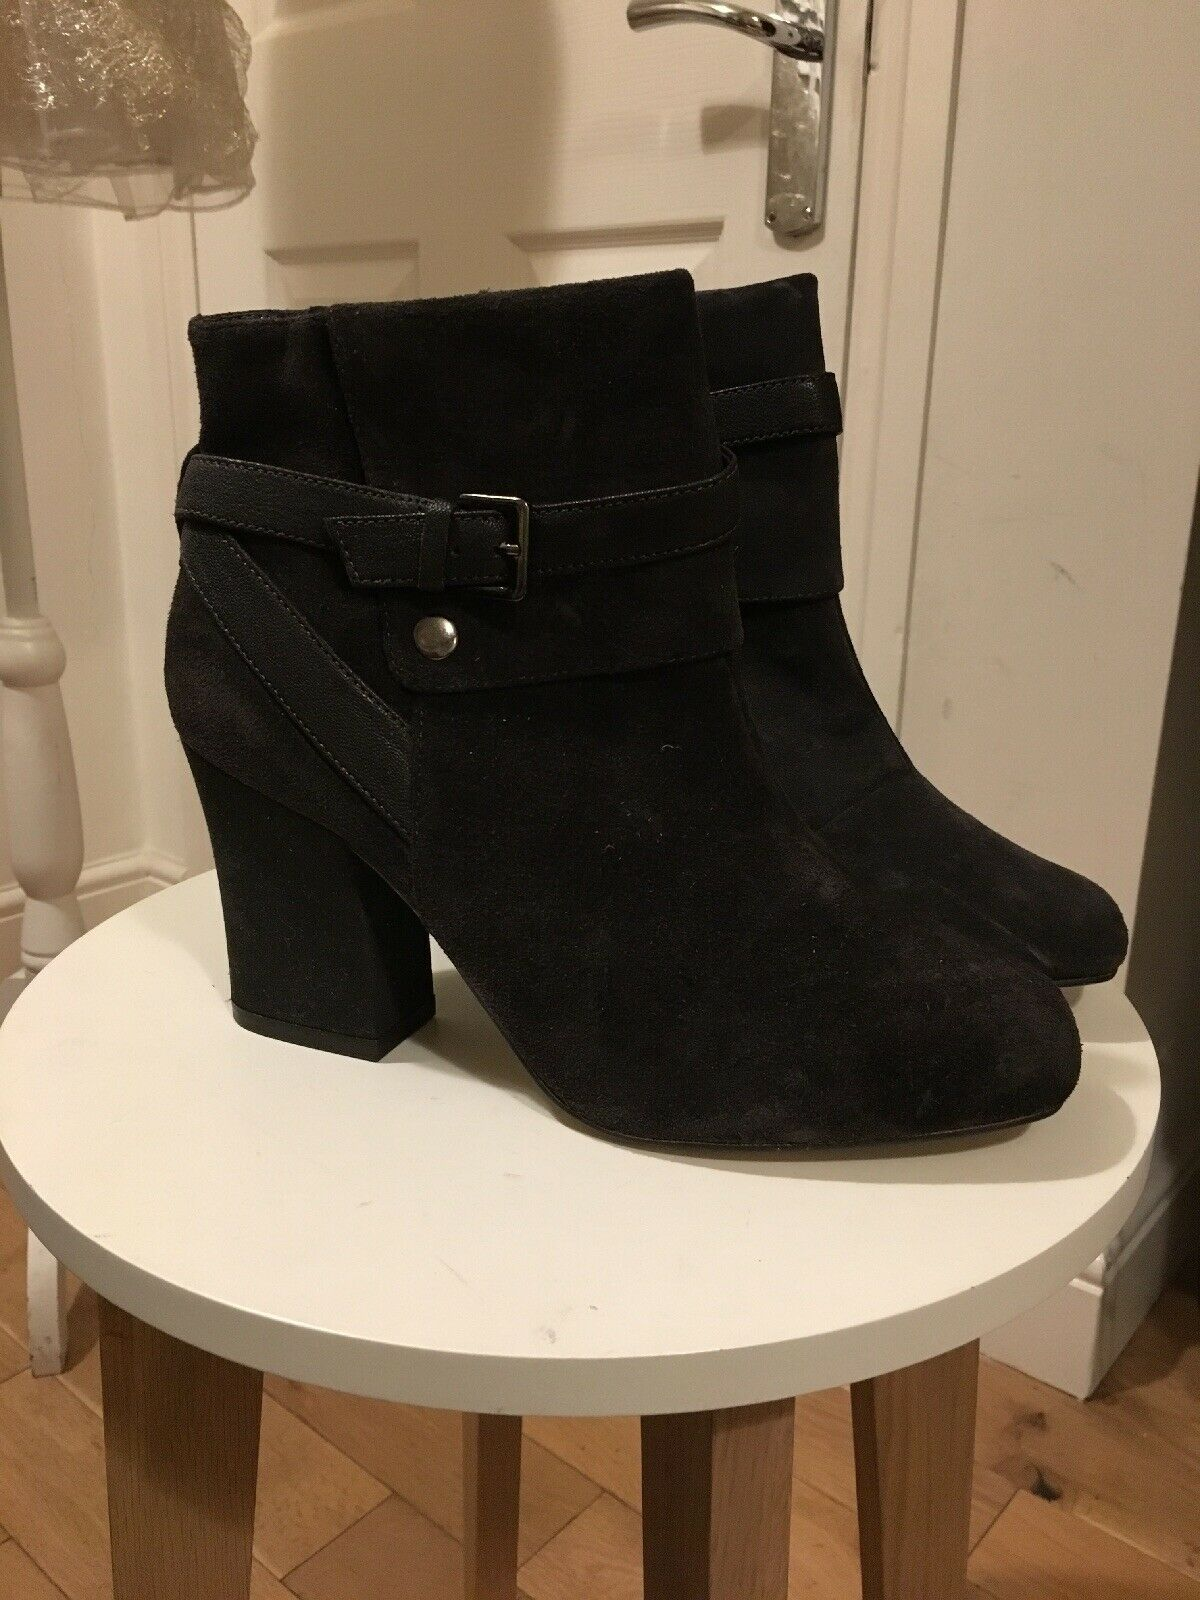 BNWT M&S Ankle Boots Size 7.5 100% Suede Leather Dark Grey New